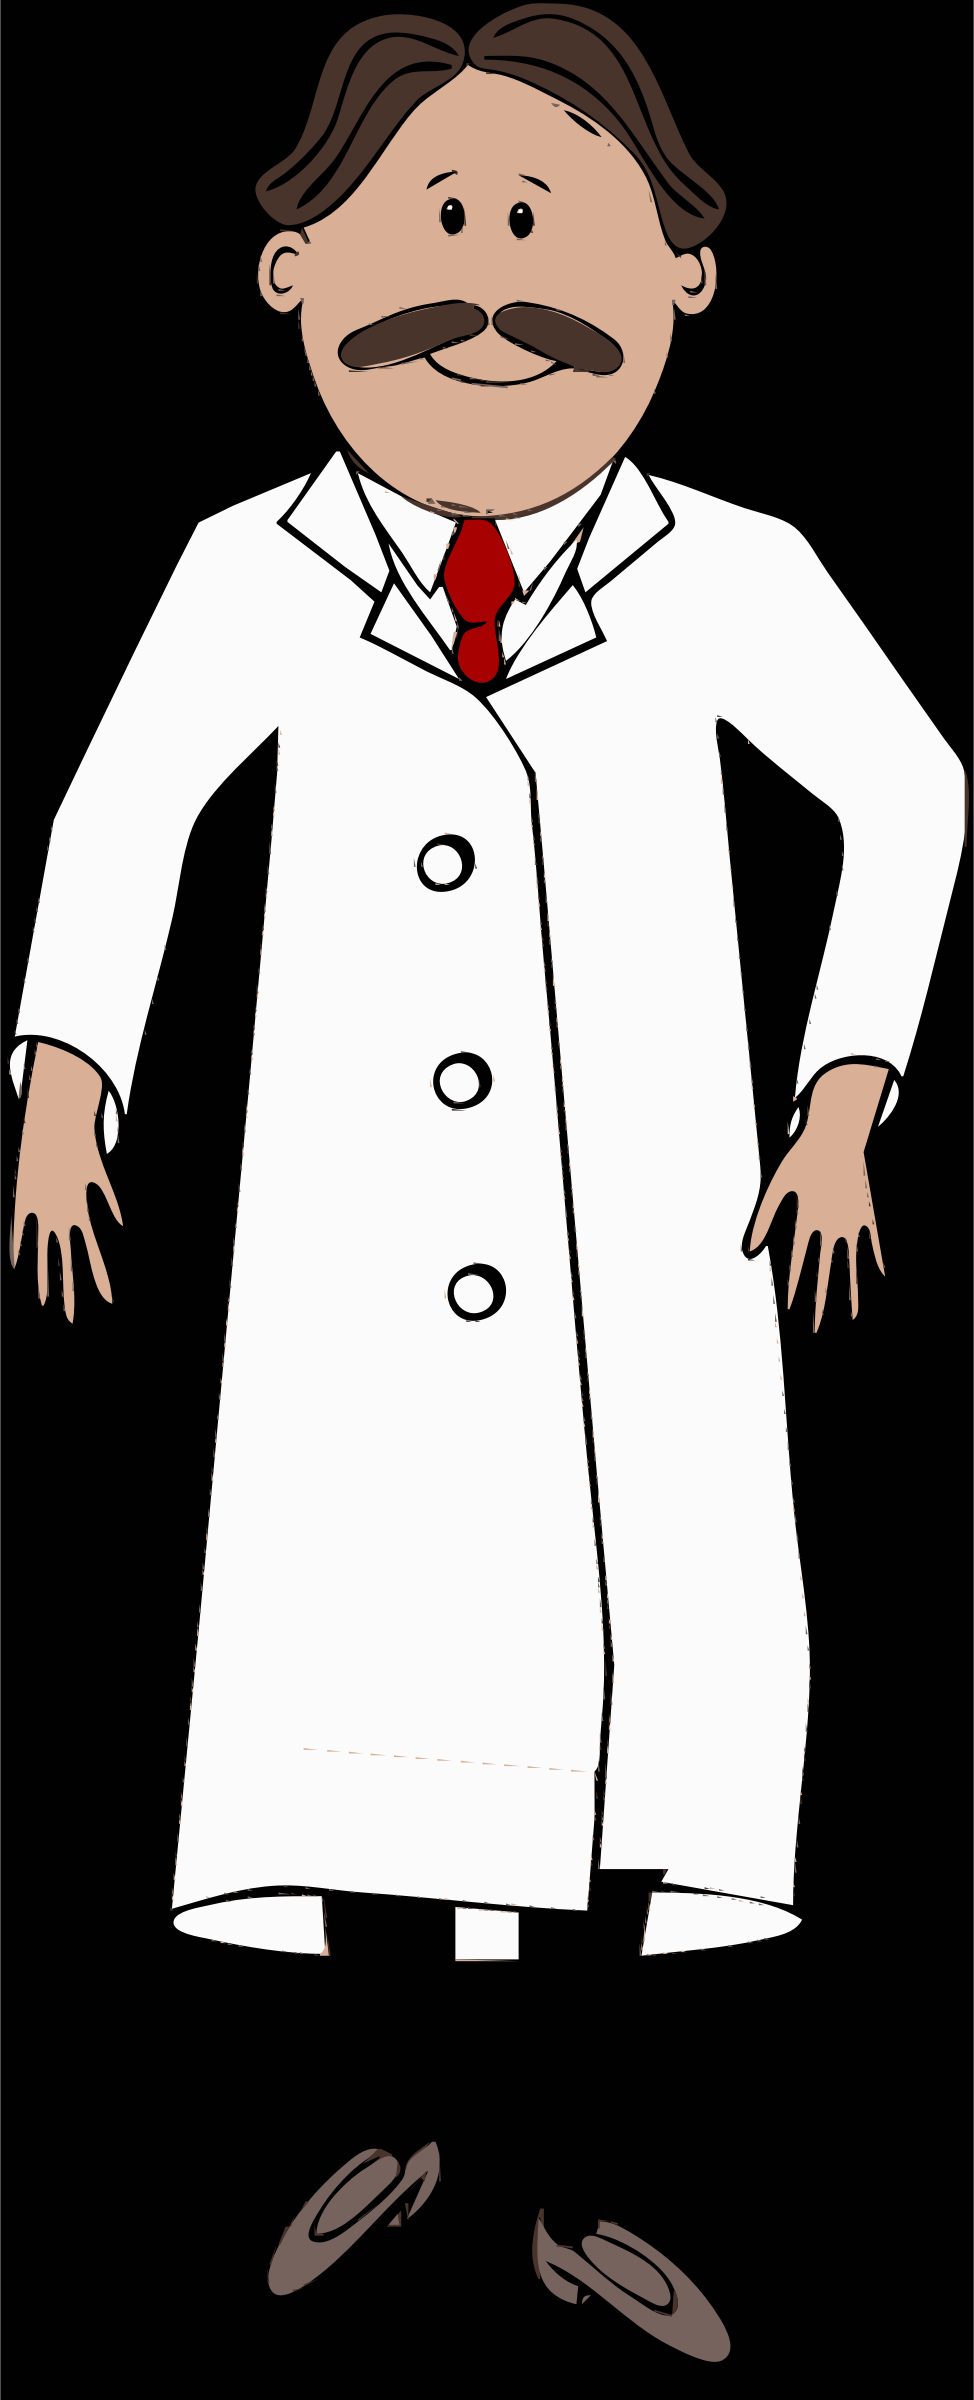 lab coat worn by scientist with mustache by barnheartowl